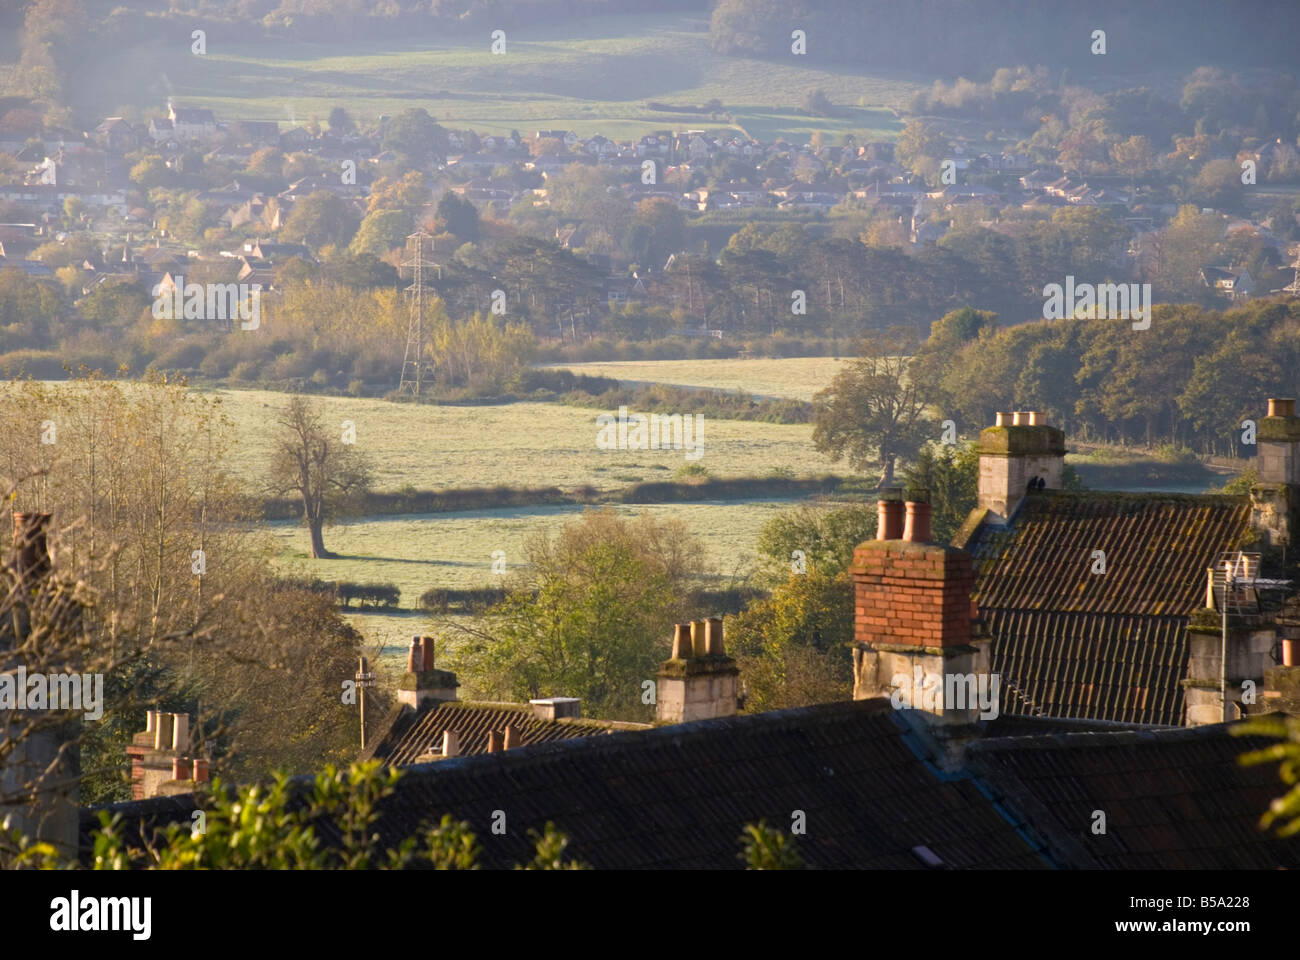 View from Batheaston of Bathampton water meadows site of a proposed Park and Ride scheme opposed by local people Stock Photo